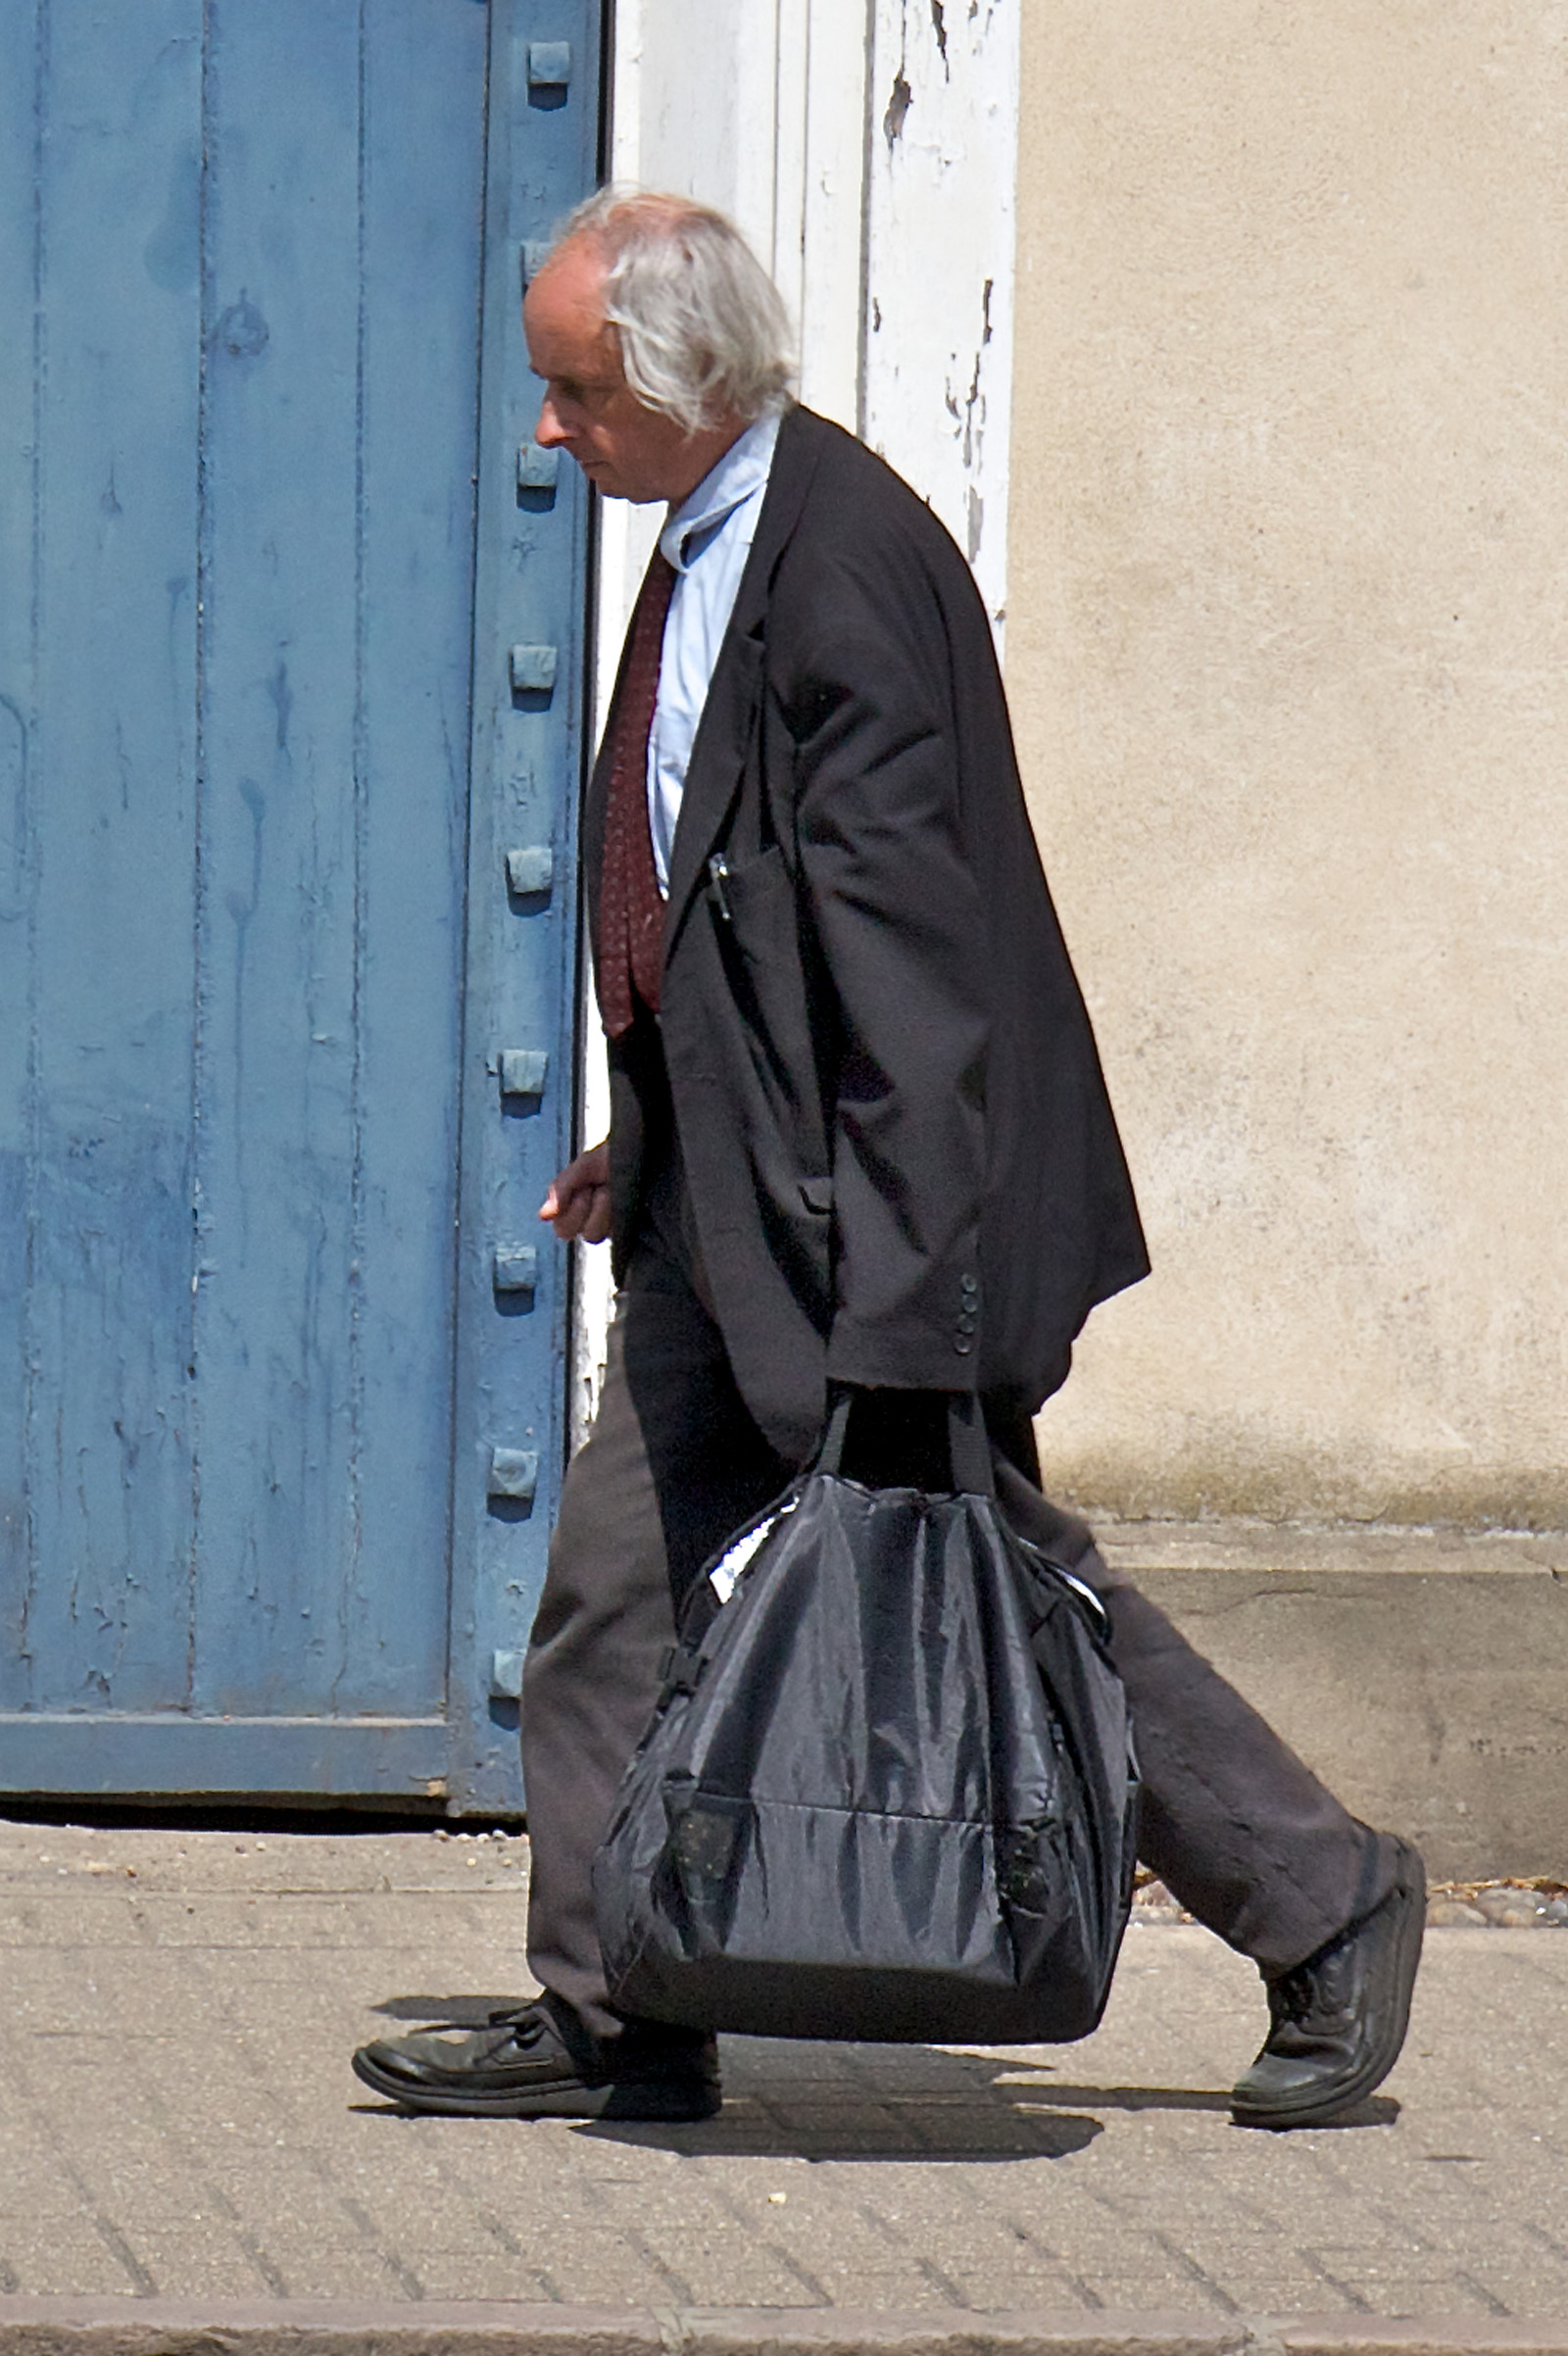 Man carrying a lot of books in a black bag